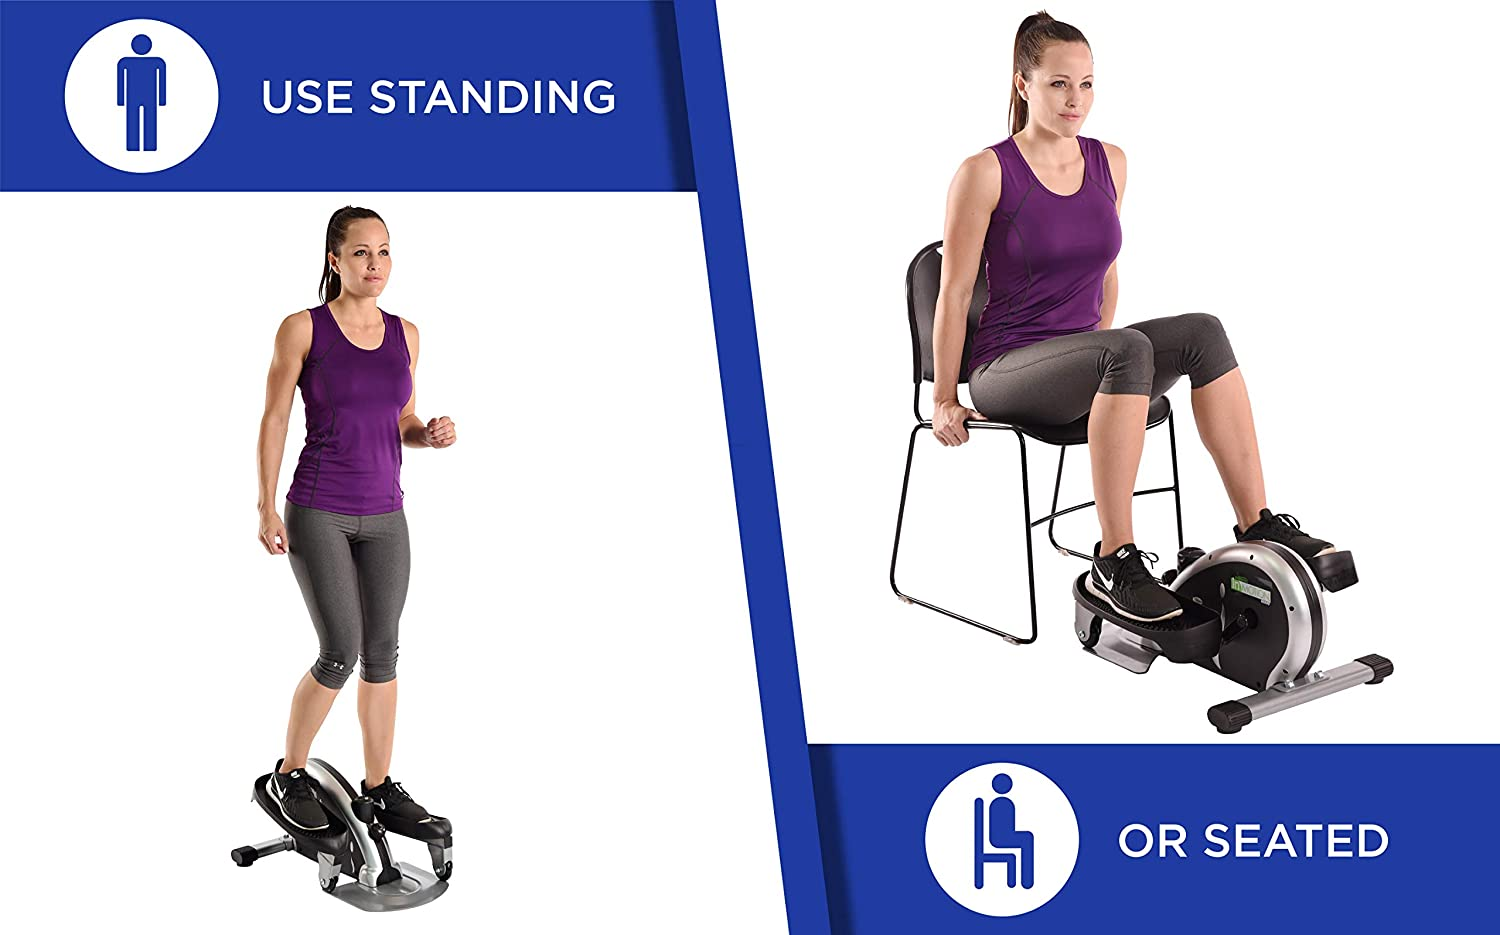 Stamina InMotion E1000 Compact Strider Elliptical